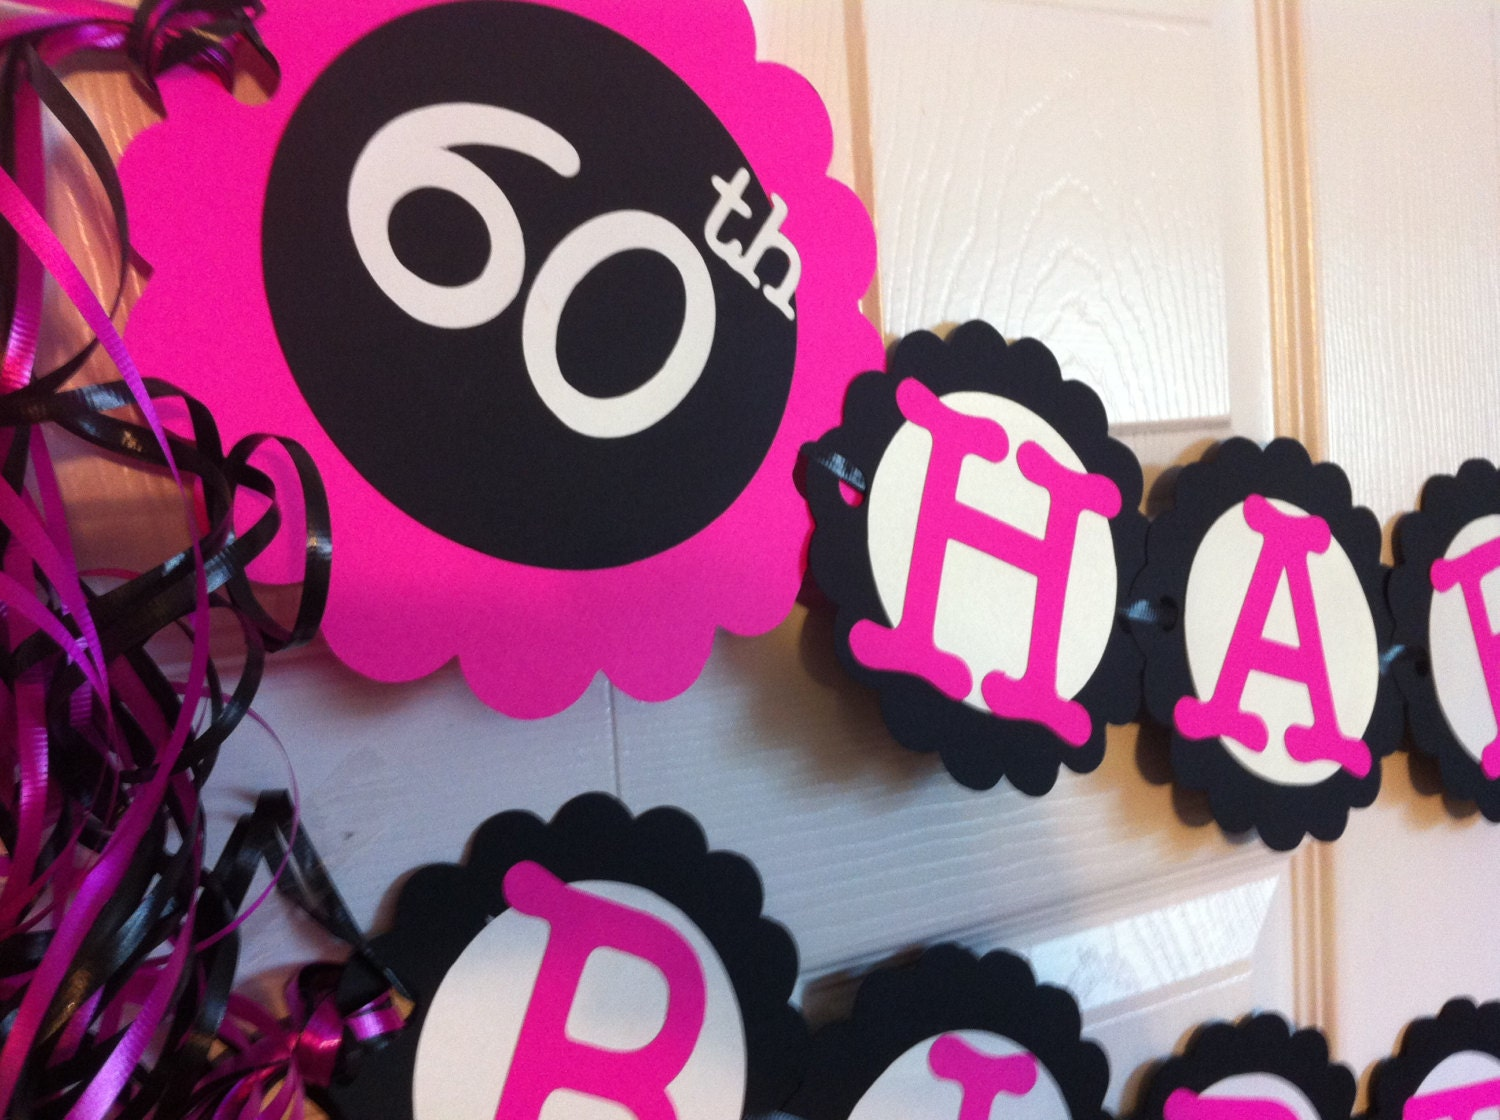 60th birthday decorations personalization available for 60th birthday decoration ideas